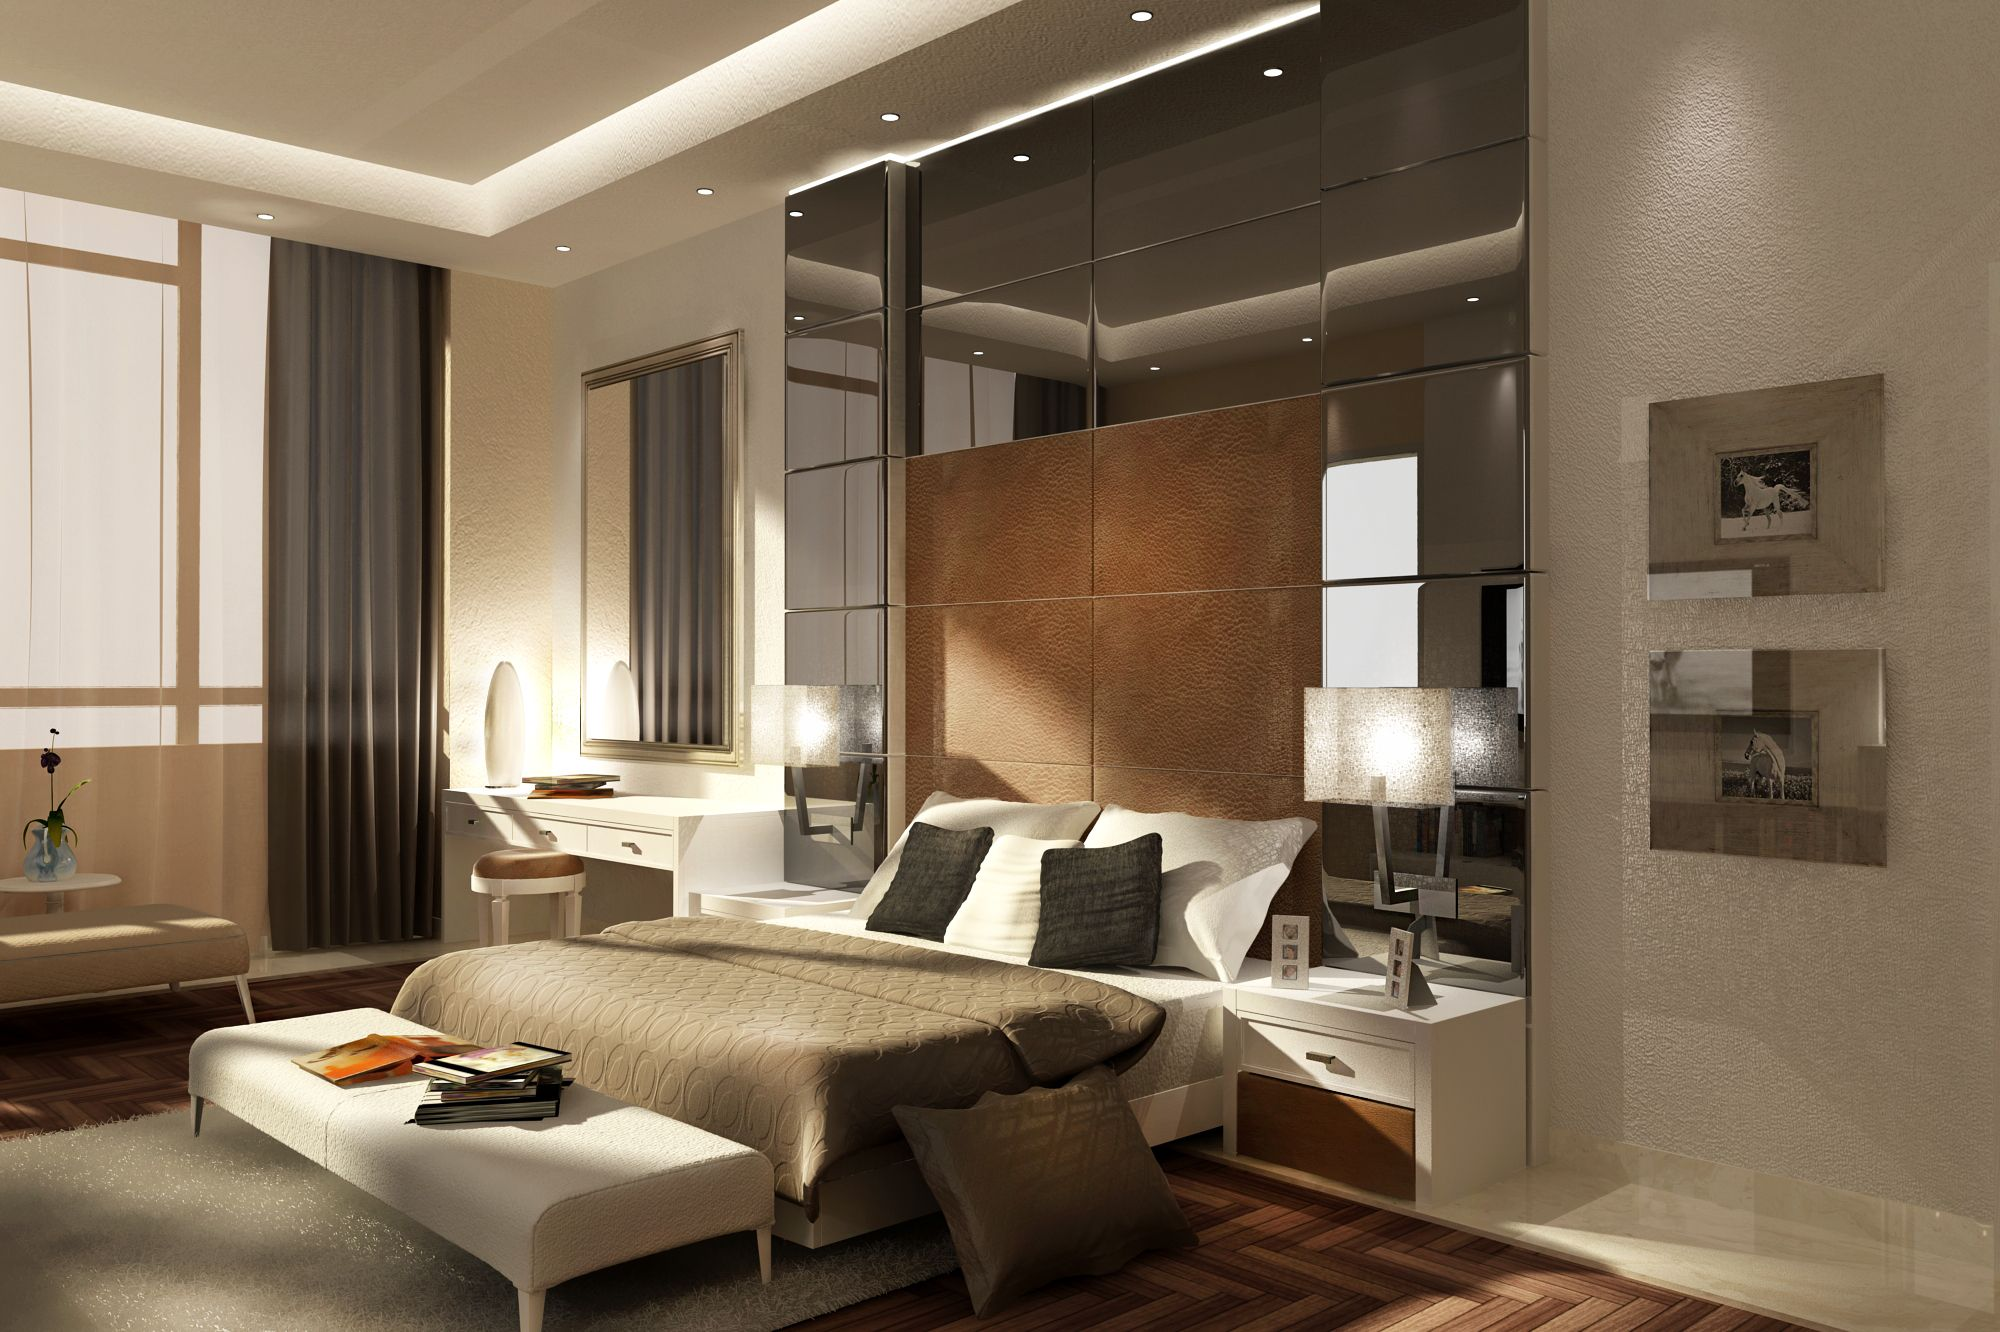 3d render 3d max interior design bedroom design modern for Interior designs of bedrooms pictures